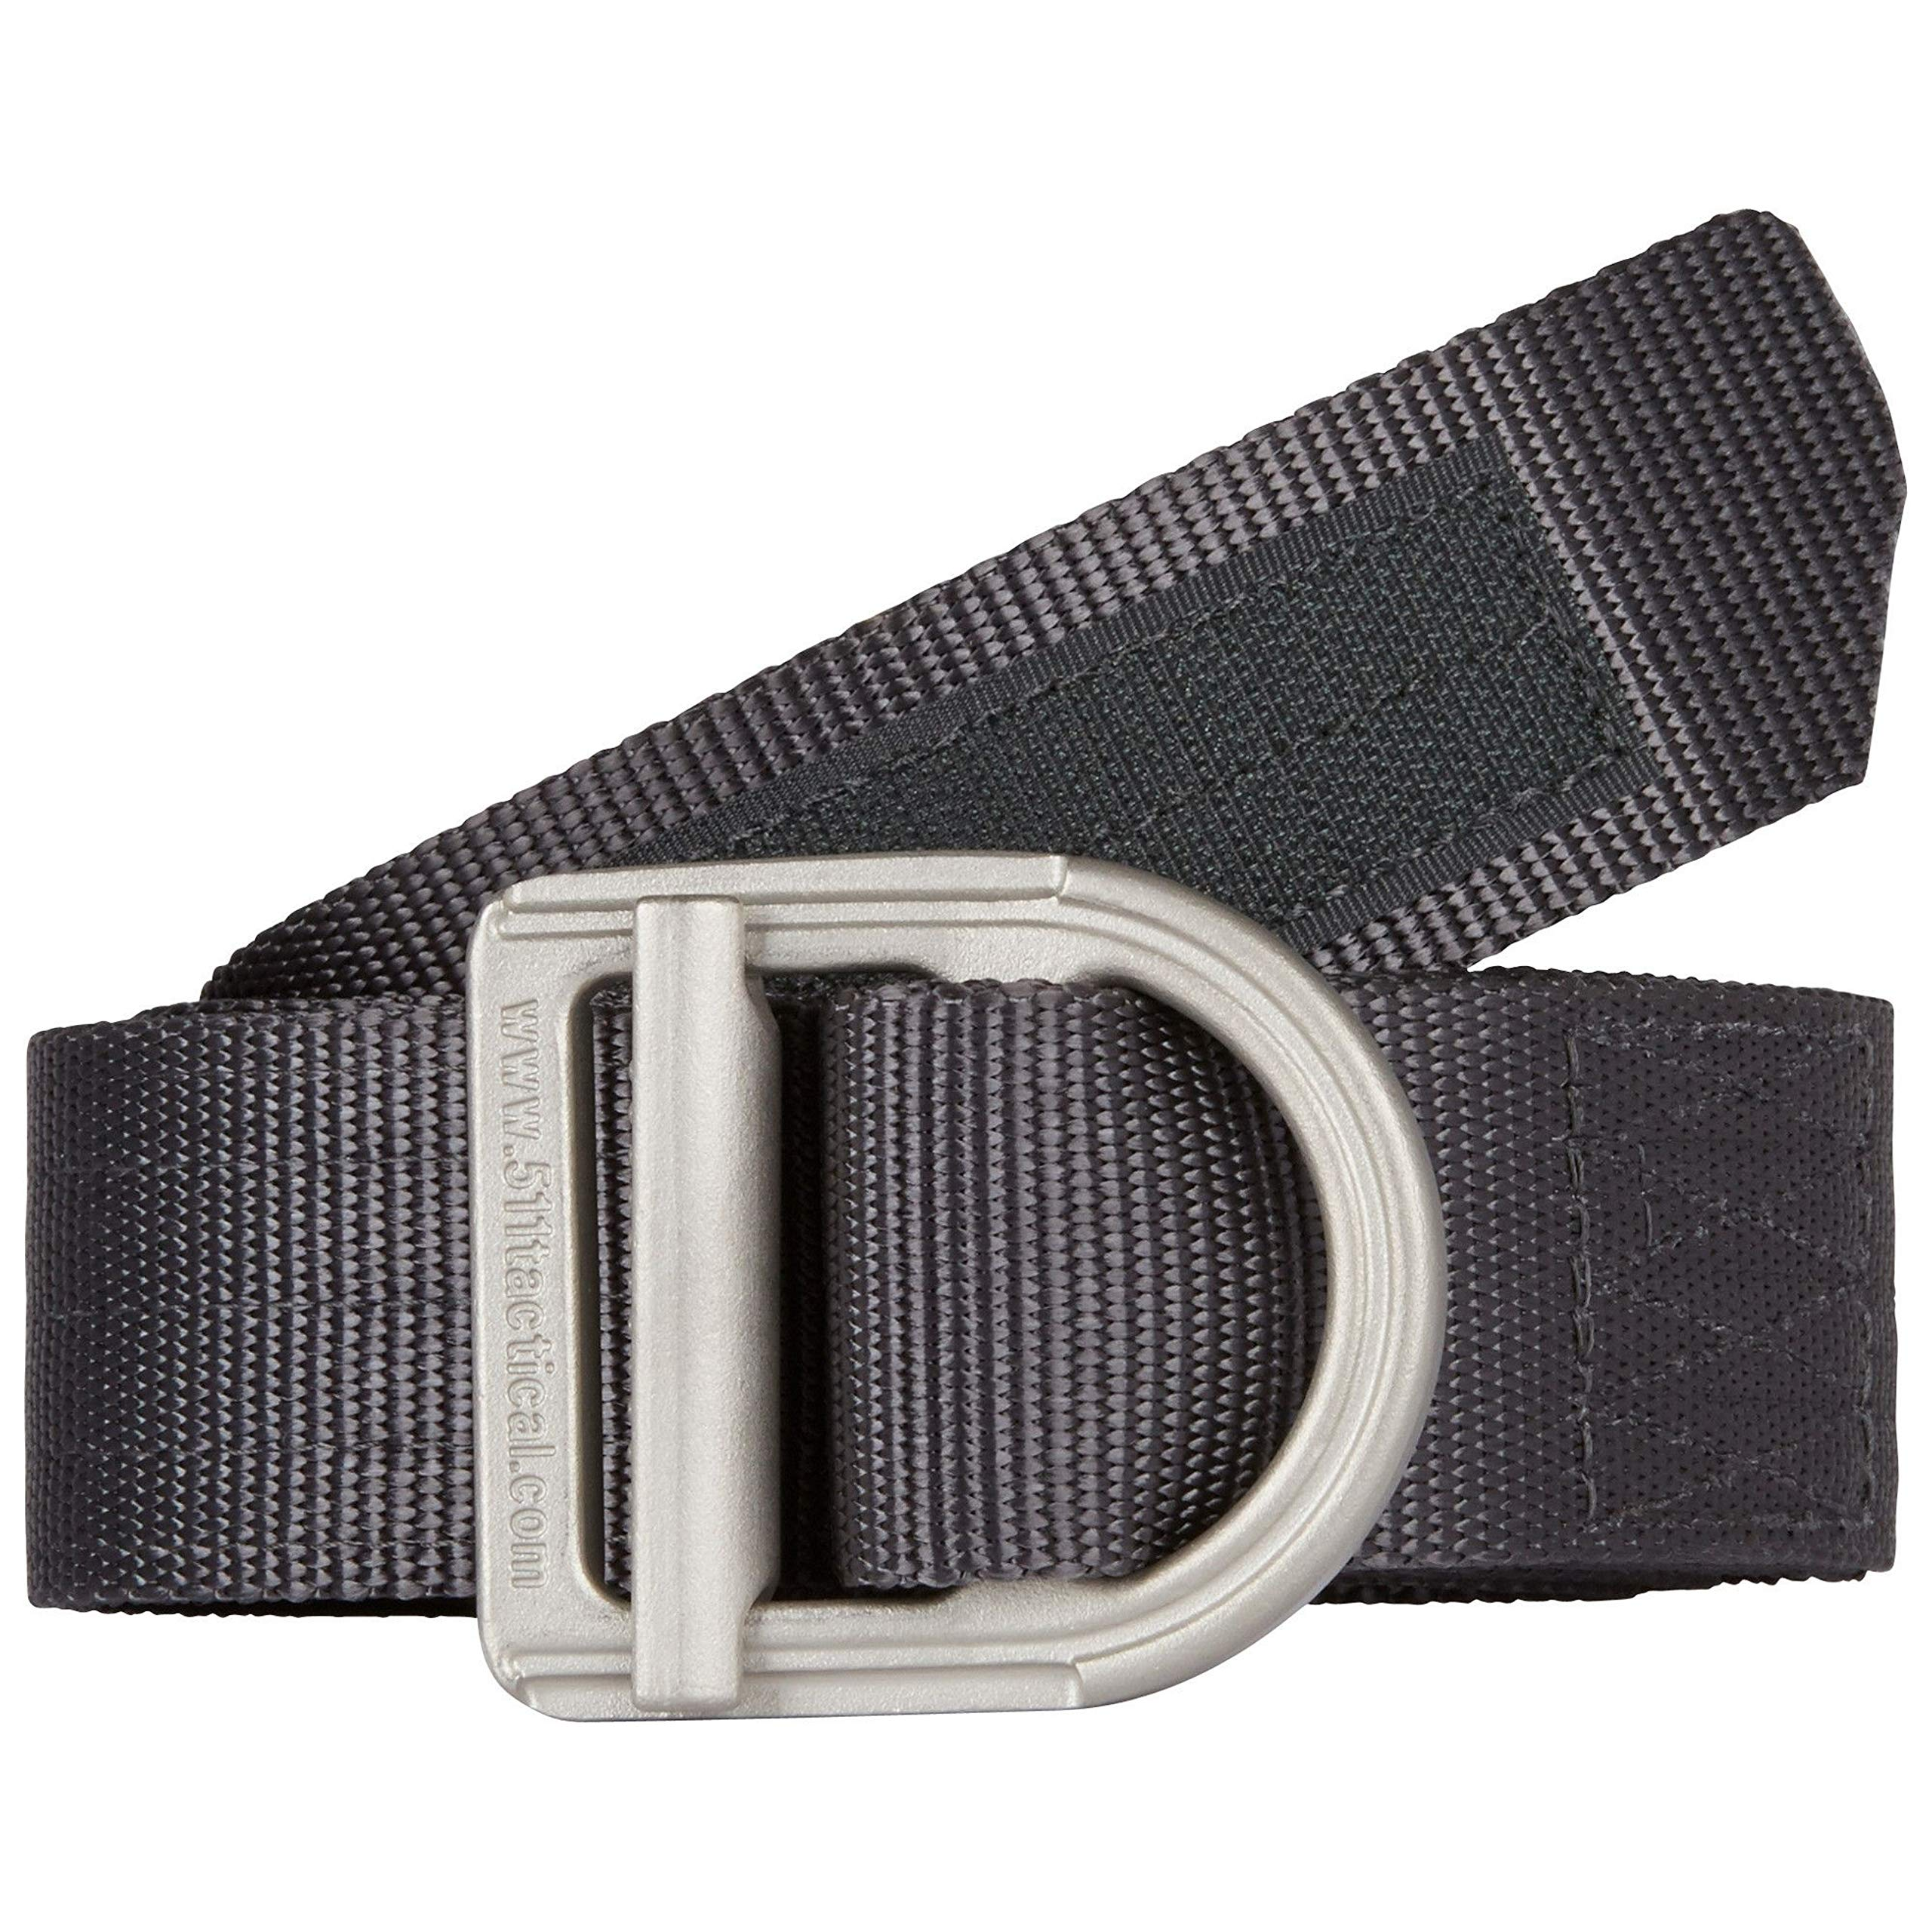 5.11  Trainer 1.5'' Tactical Belt, Heavy Duty for Military and Law Enforcement, Style 59409, Charcoal (018), S